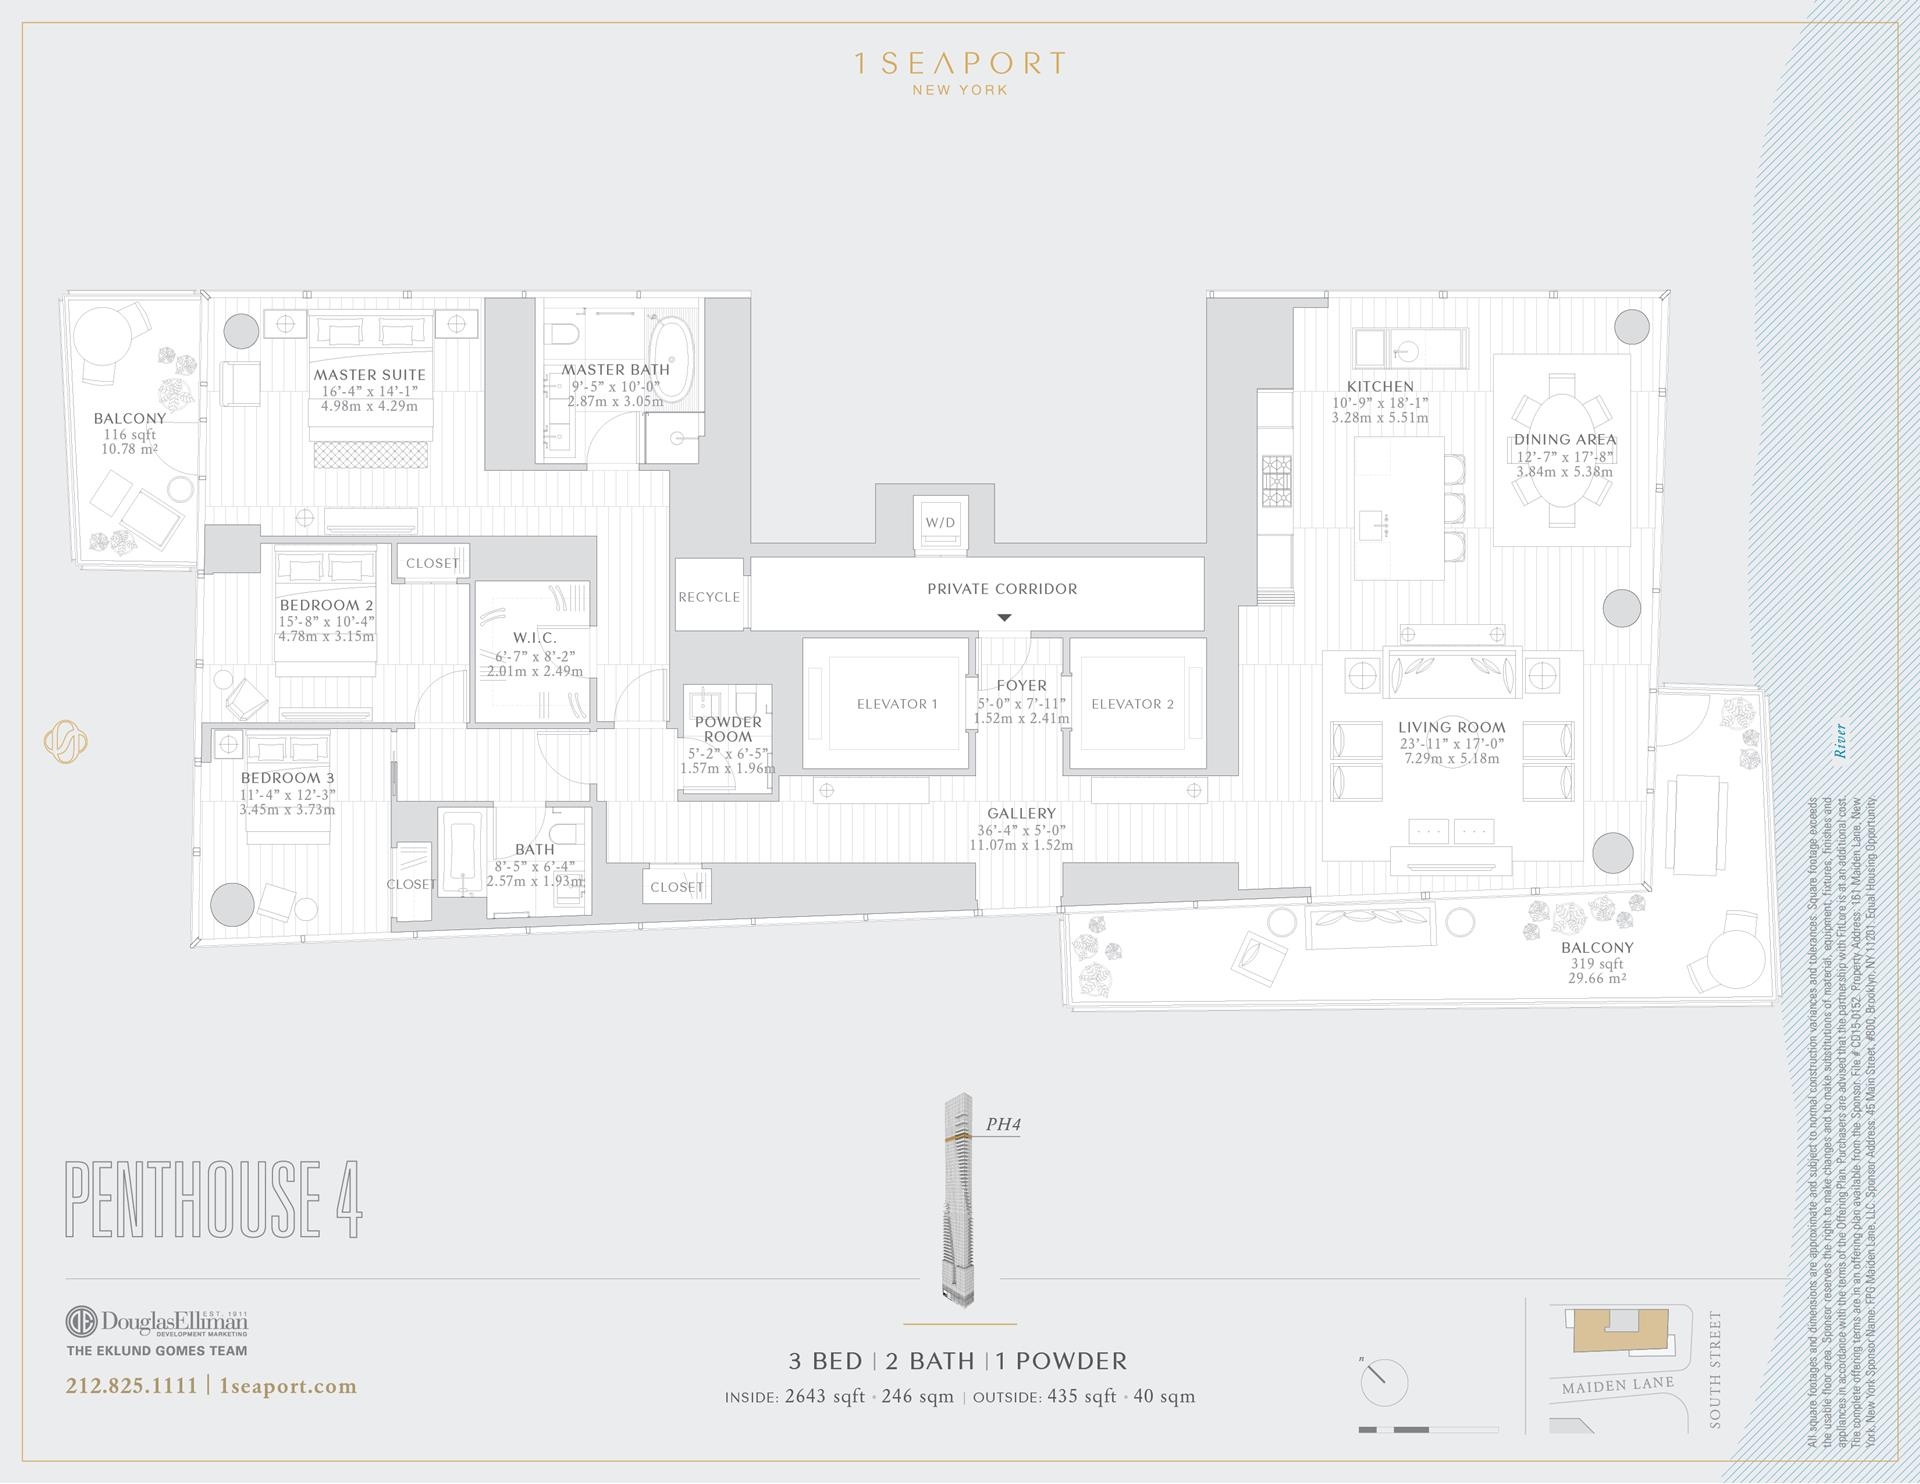 Floor plan of 1 Seaport, 161 Maiden Ln, PH4 - Financial District, New York